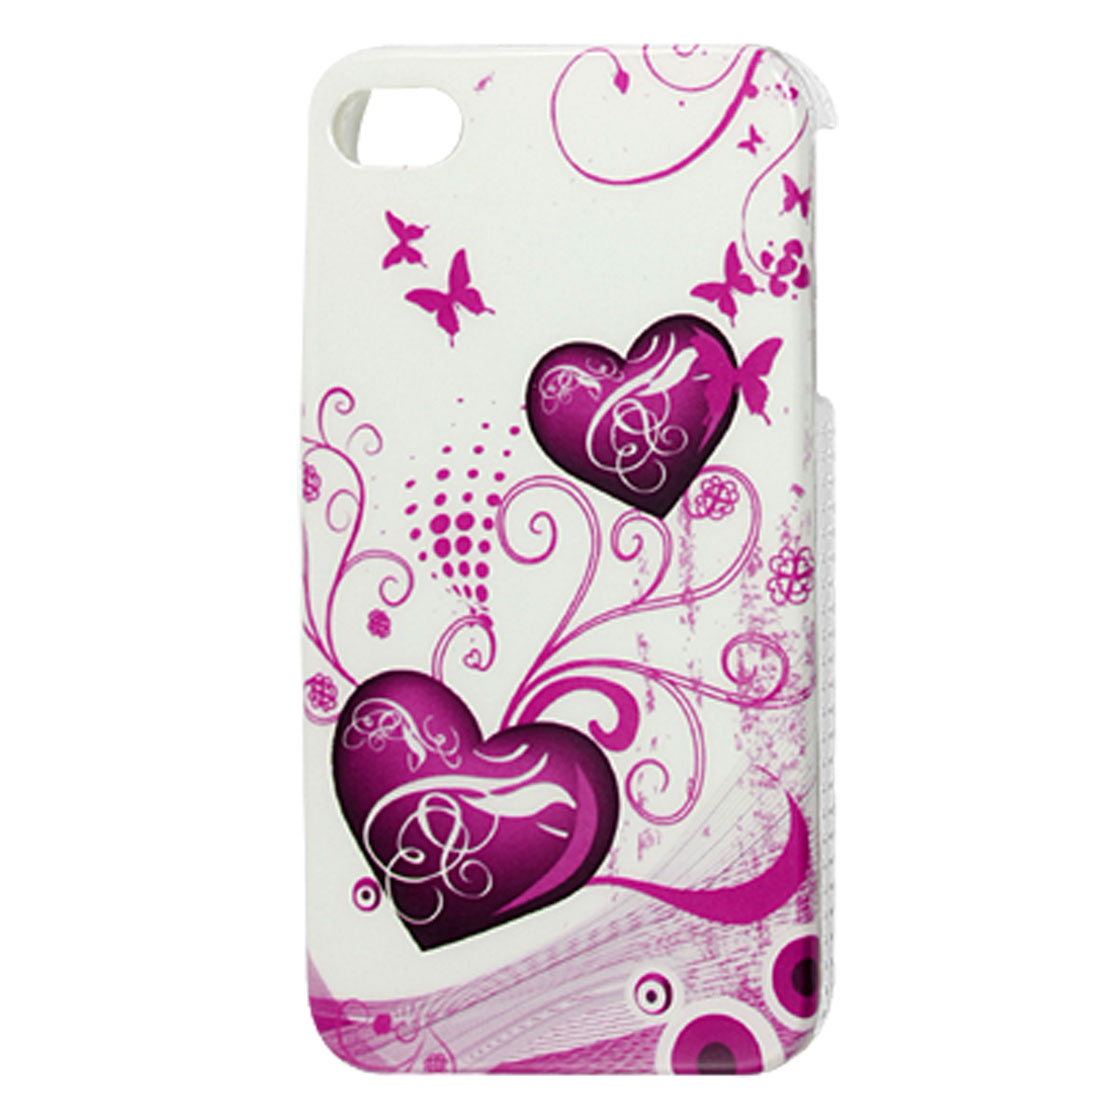 Amaranth Heart IMD Hard Plastic Back Case Cover for iPhone 4 4G 4S